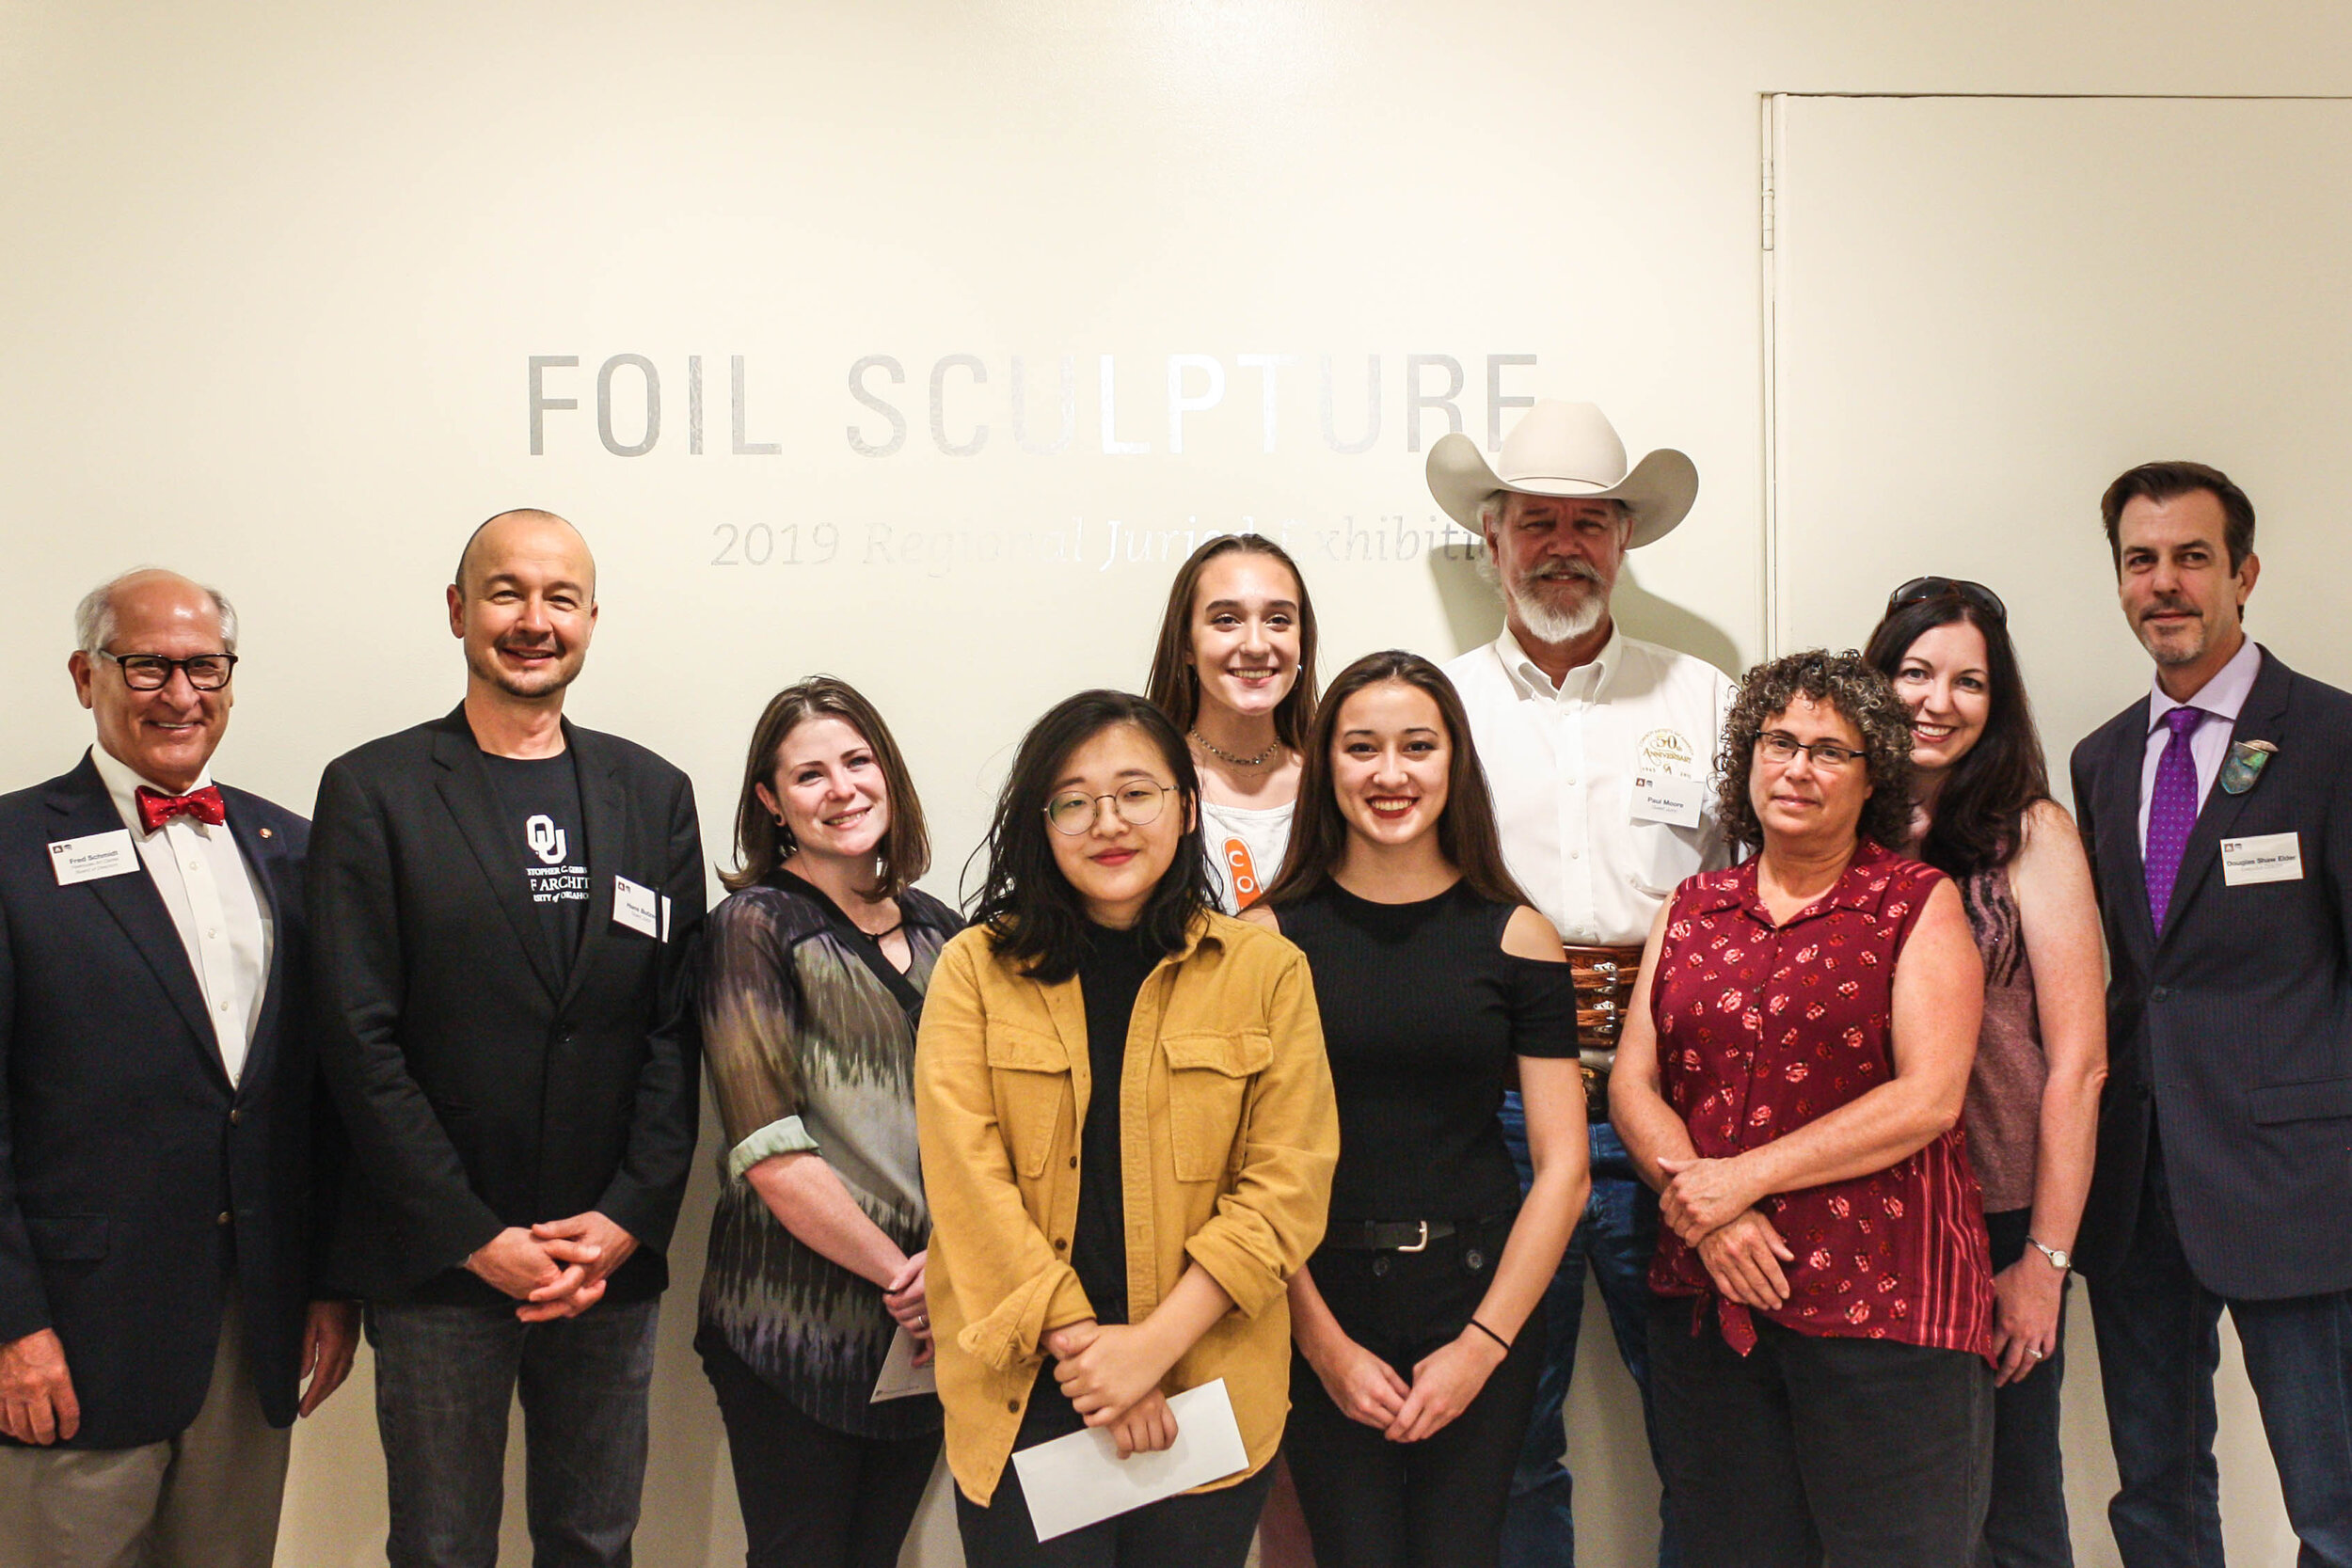 Left to Right: Fred Schmidt (FAC Board Member), Hans Butzer (Dean of OU Gibbs College of Architecture), Sarah Gonzalez (Special Award), Jamie Lim (1st Place), Santana Jimenez-Calhoun (2nd Place), Anneli Walsh (Honorable Mention), Paul Moore (Sculptor-in-Residence at OU School of Visual Arts), Terri Russell (Honorable Mention), Christy Phelps (Honorable Mention), Douglas Shaw Elder (FAC Executive Director)